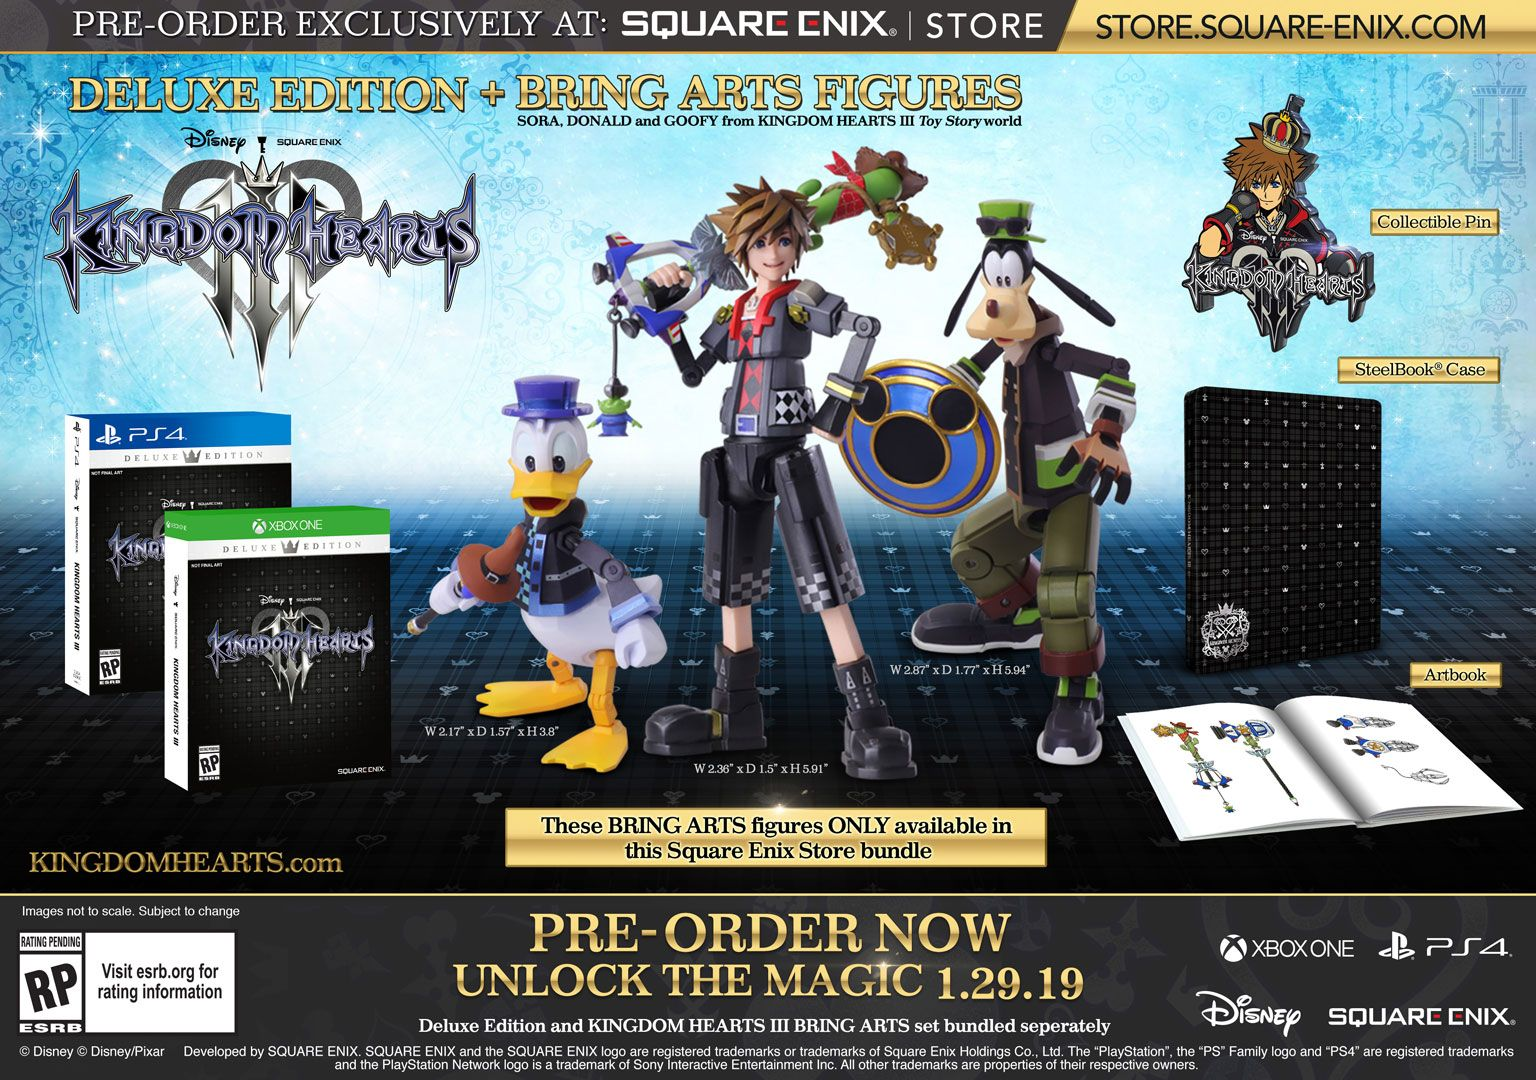 Standard Edition, Deluxe Editions and Pre-Order Bonuses